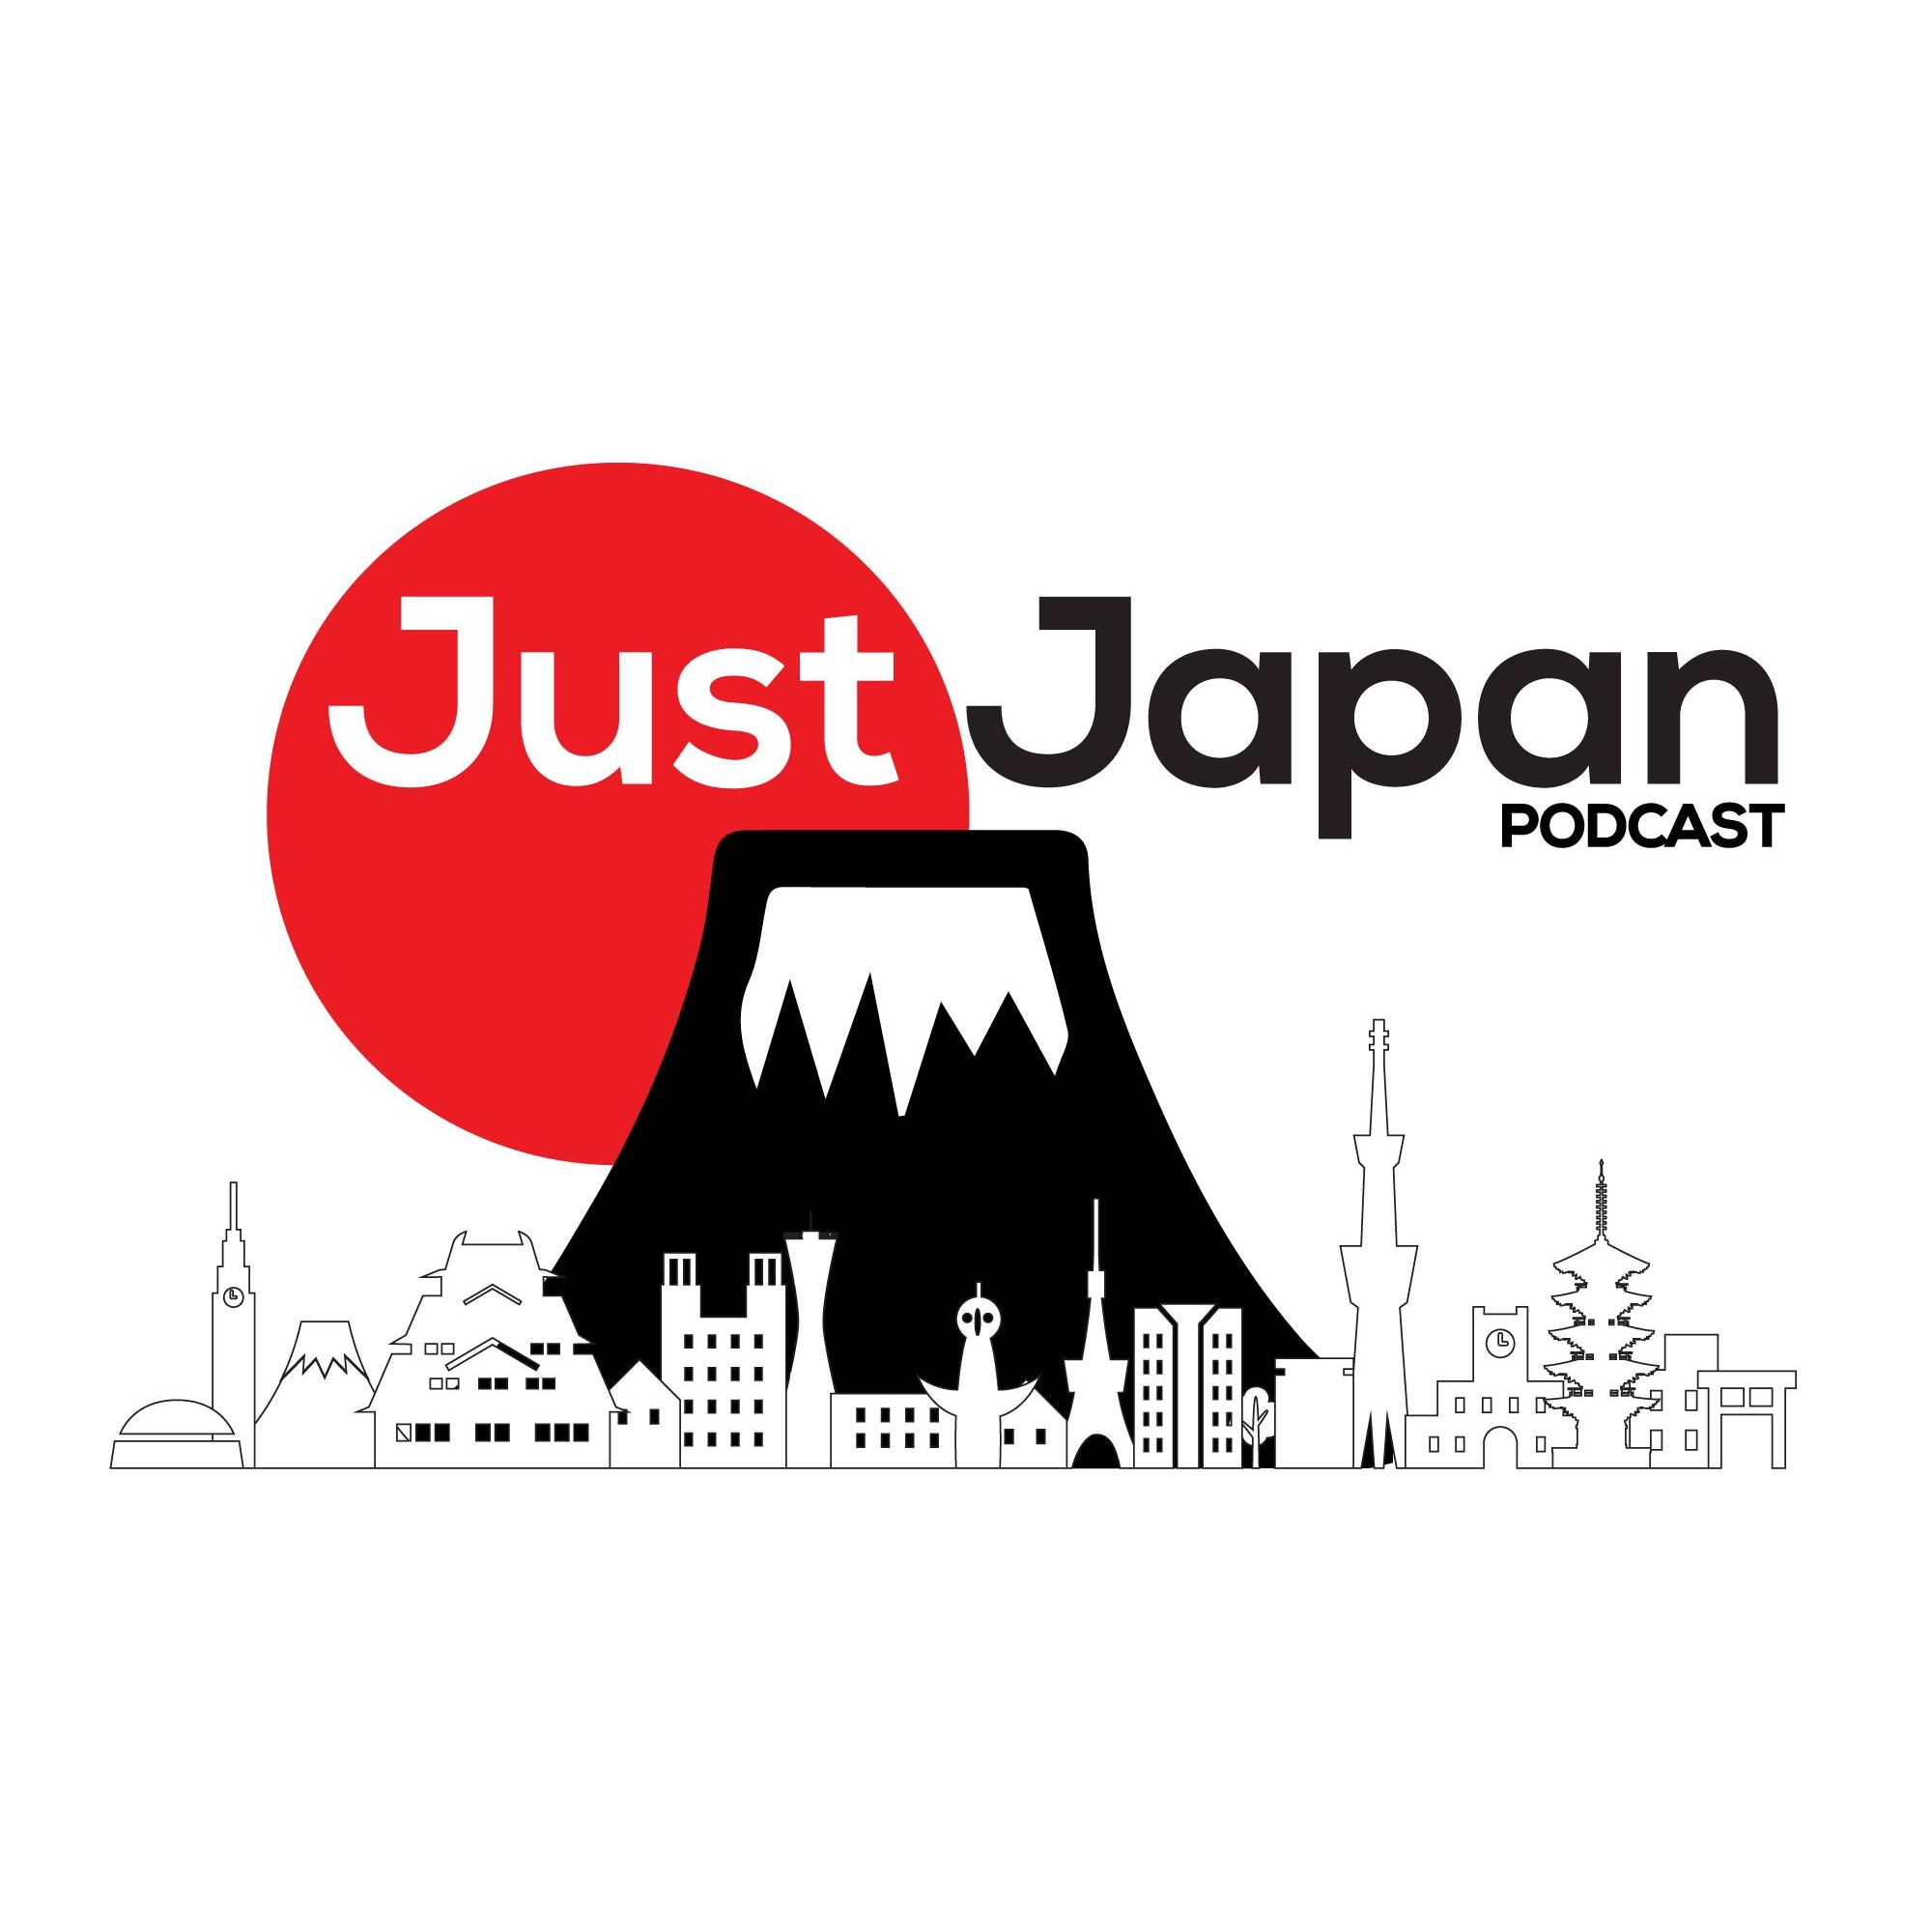 Just Japan Podcast 195 - Impossible to Imagine